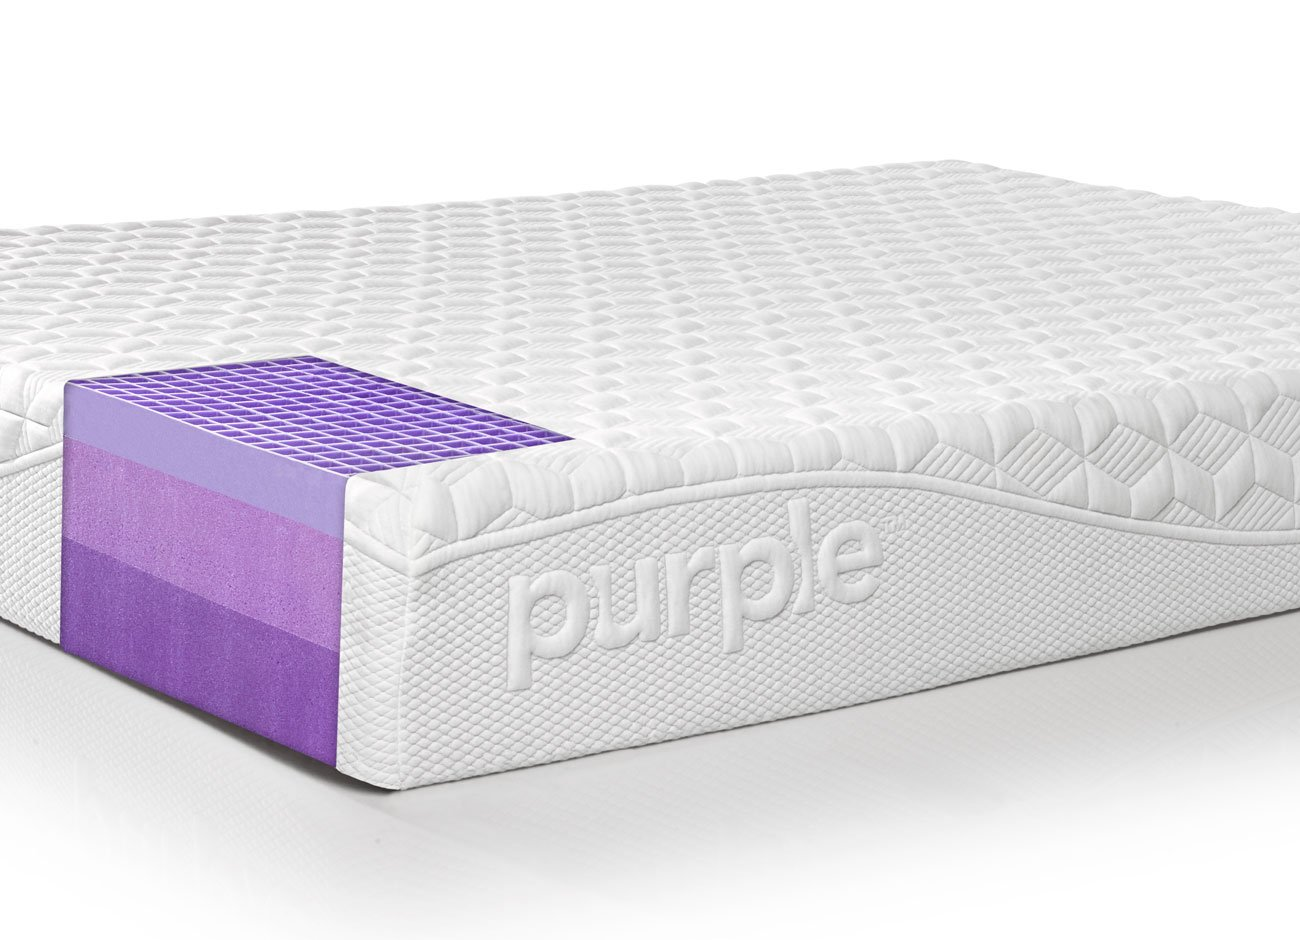 mattress king commercial. Amazon.com: Purple Queen Mattress | Hyper-Elastic Polymer Bed Supports Your Back Like A Firm And Cradles Hips Shoulders Soft King Commercial